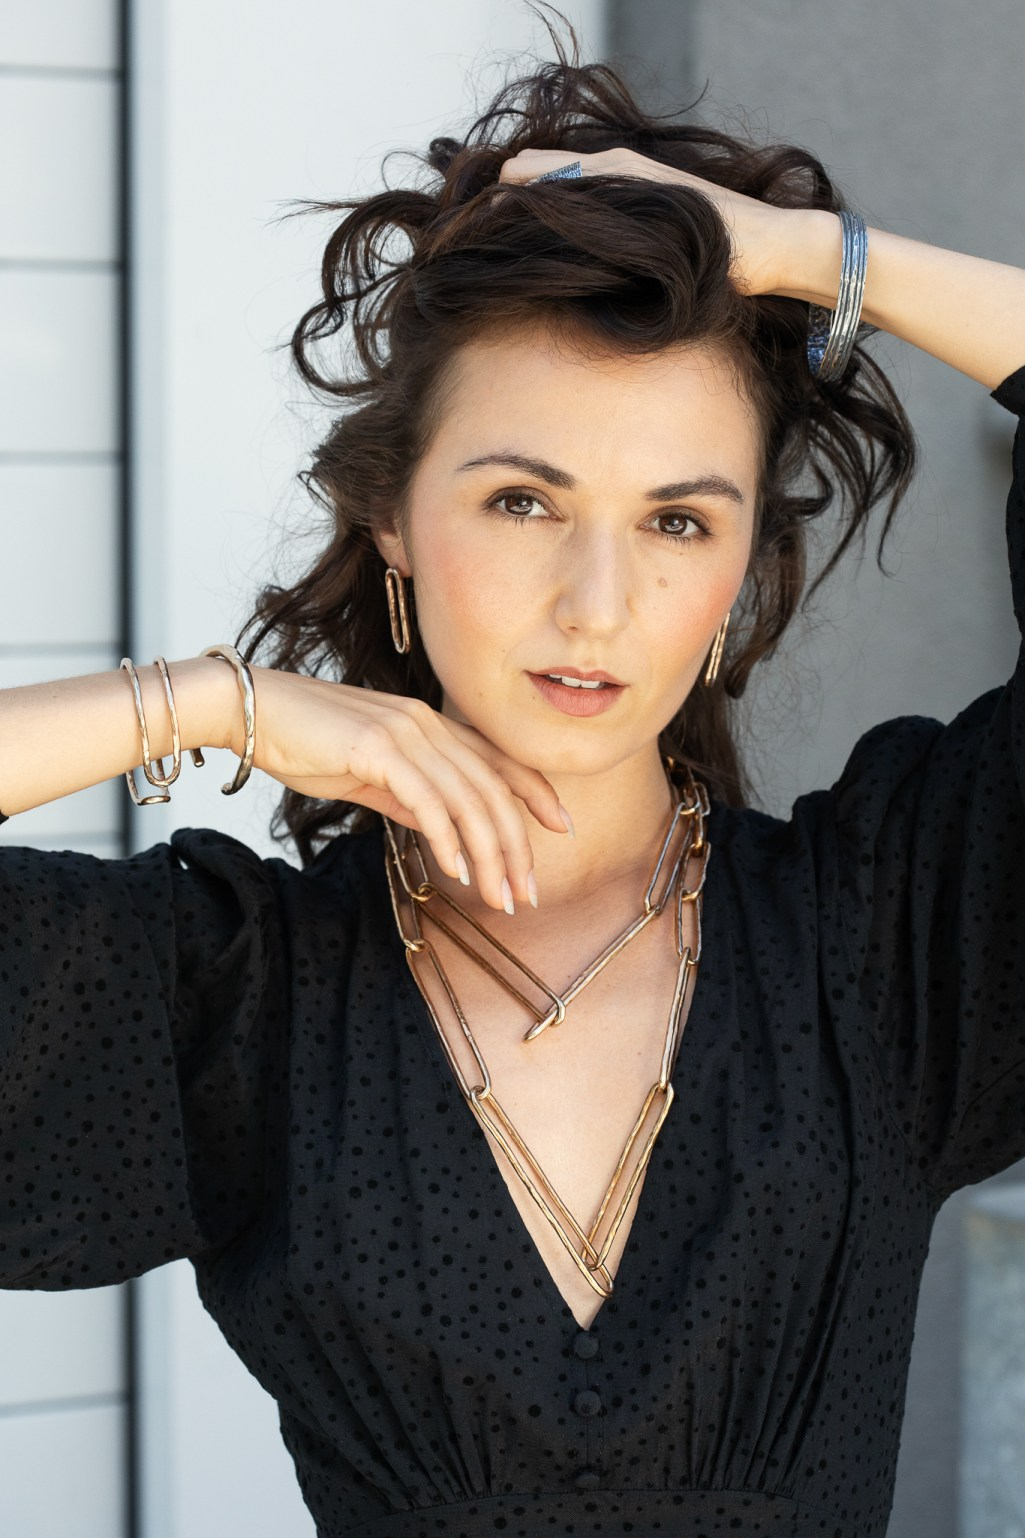 Jewelry photoshoot with models Zoe West, by SF Bay Area Photographer Ella Sophie